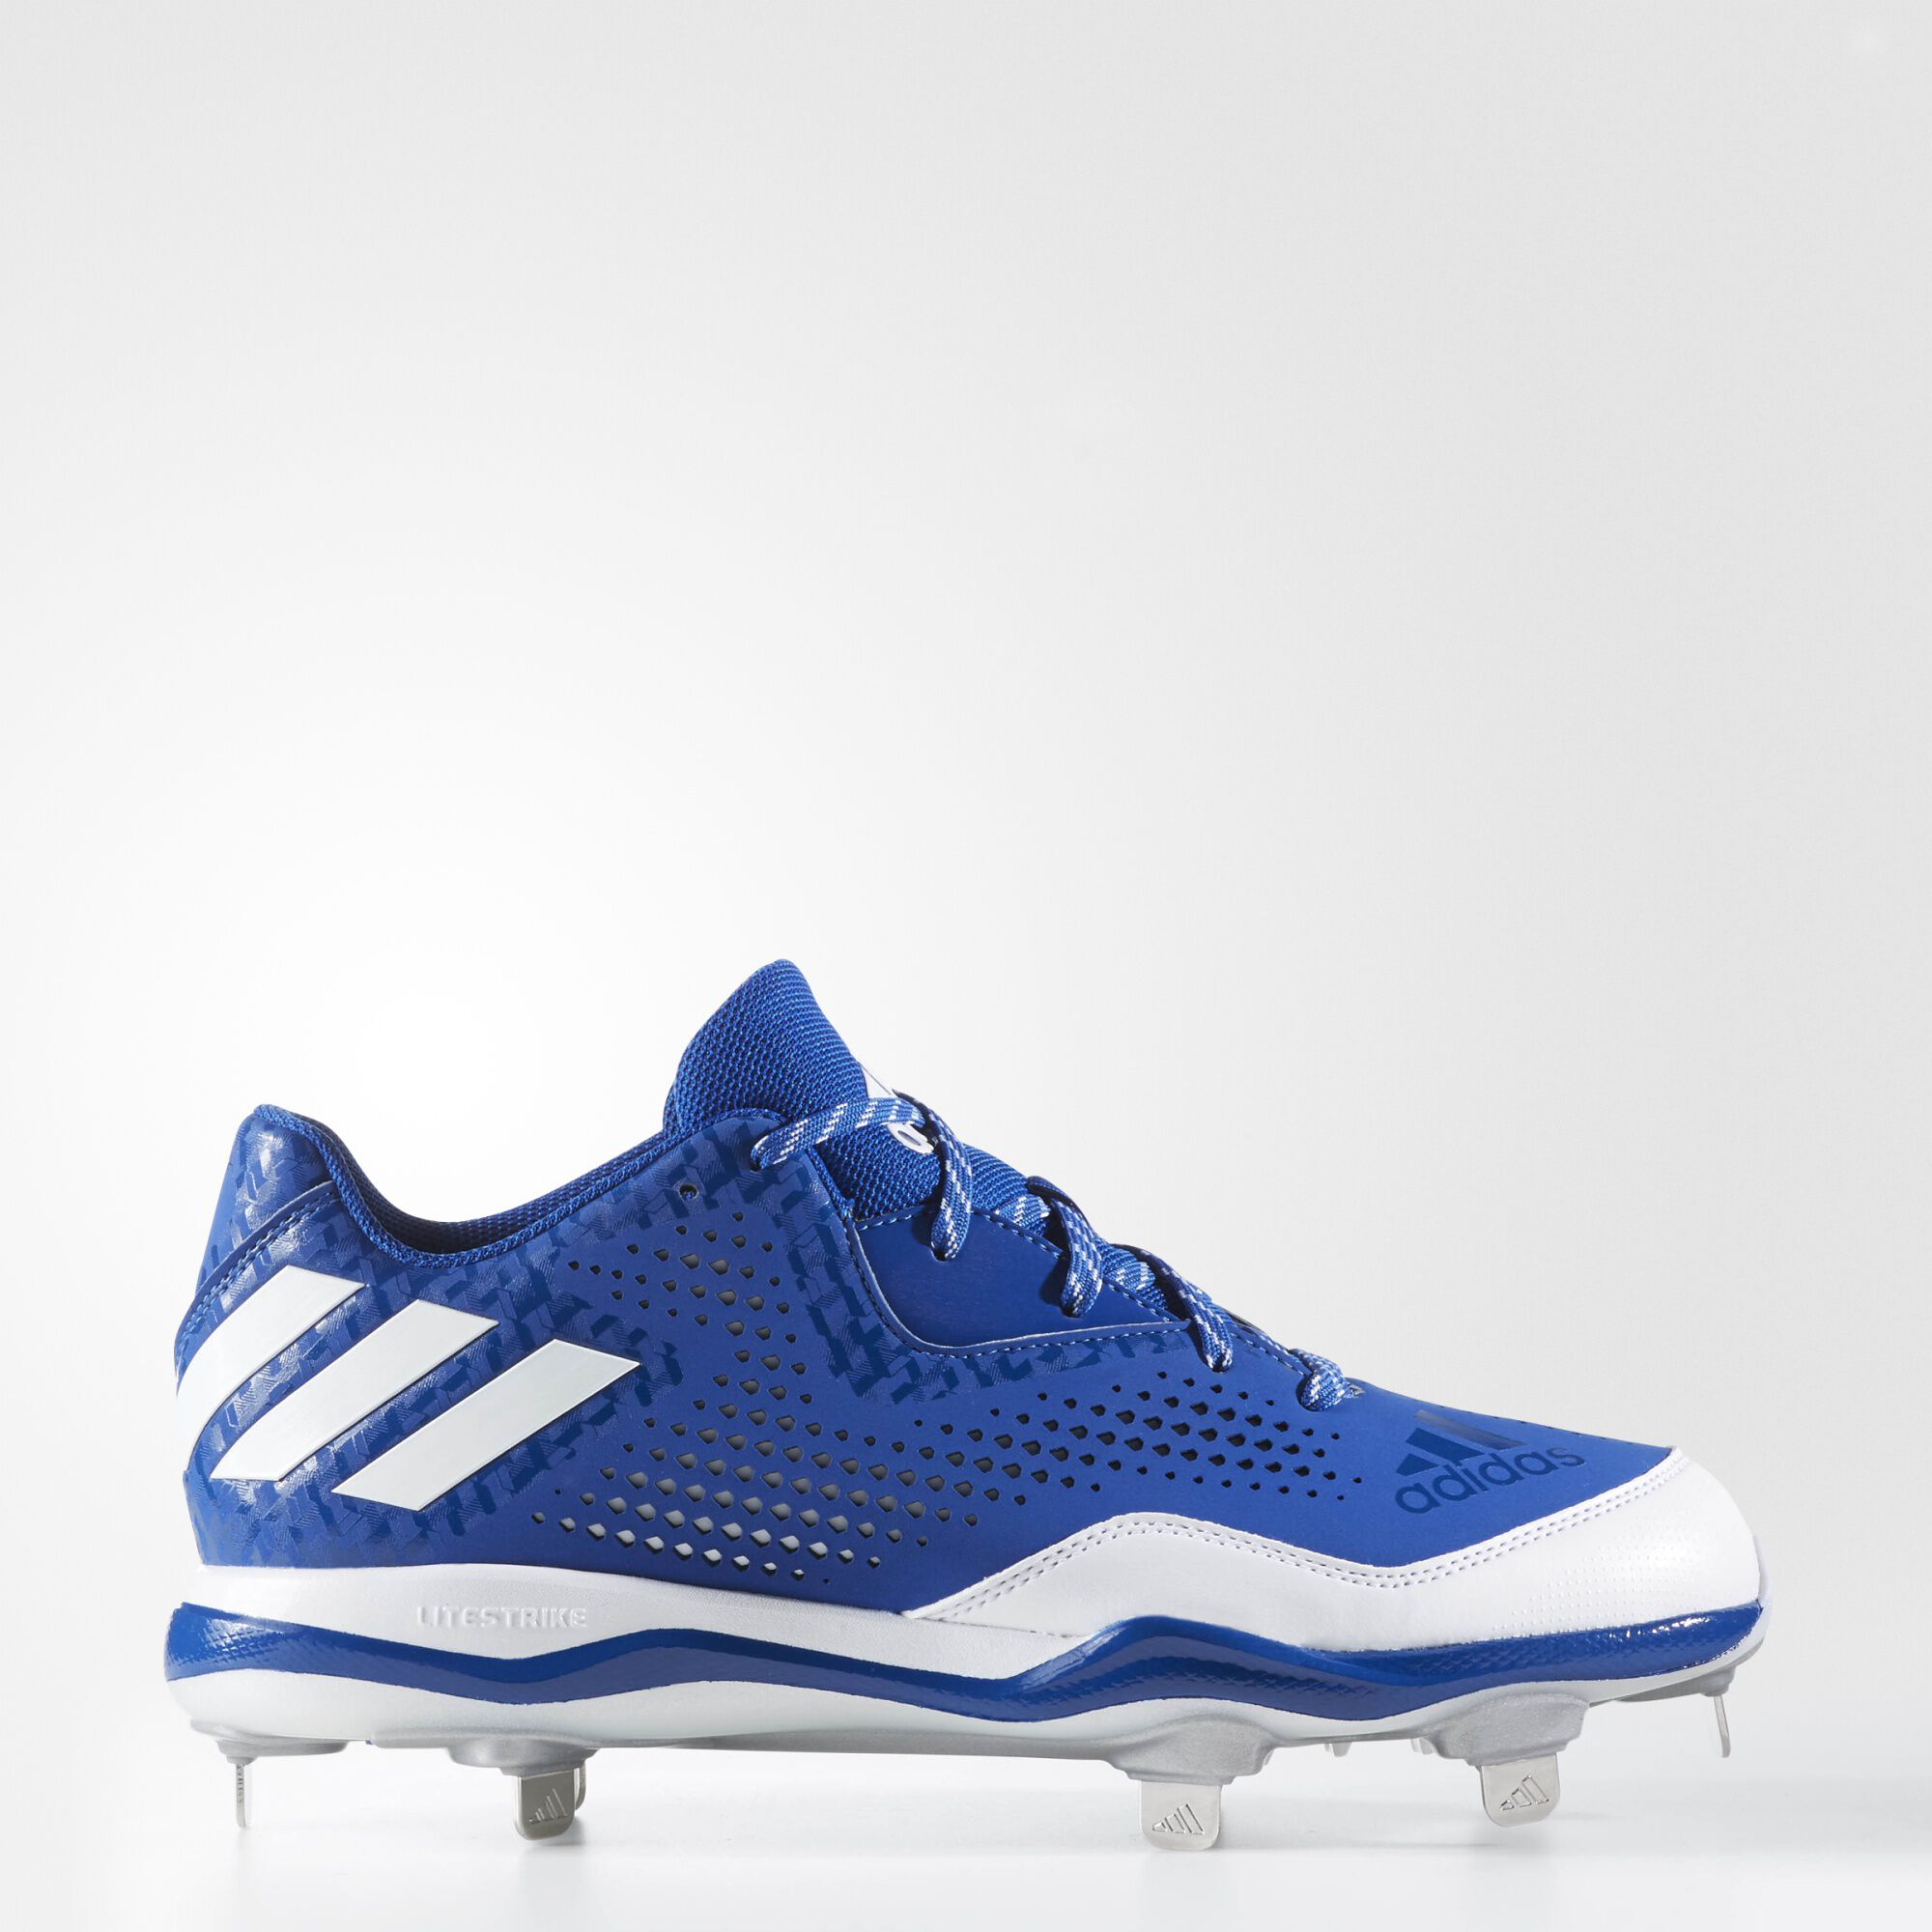 53d67bfcece5f0 Buy adidas baseball shoes   OFF76% Discounted